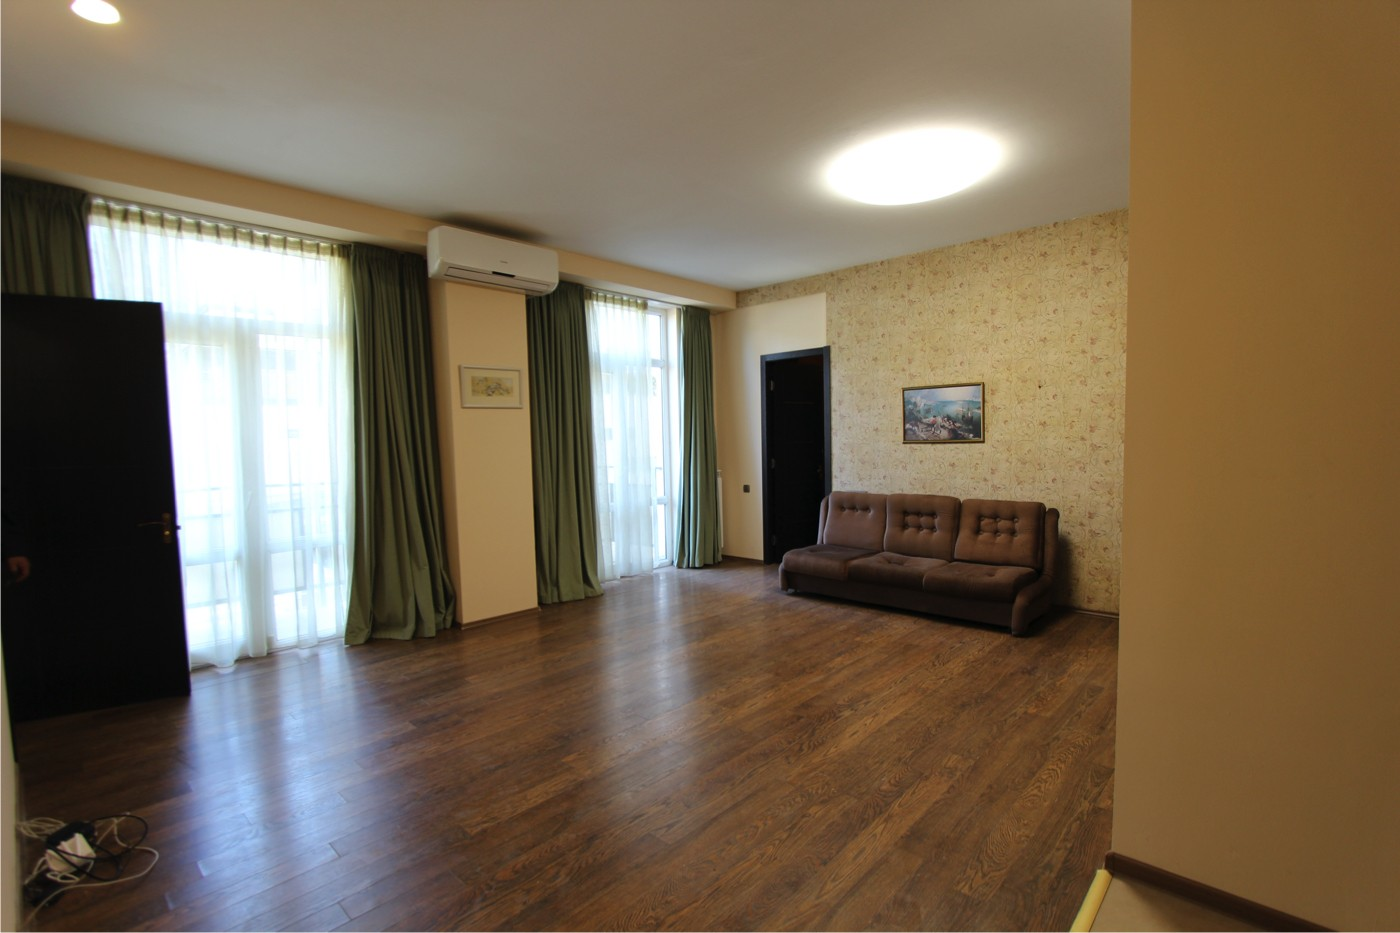 3-Room Apartment For Rent in Vake, on Abuladze Street